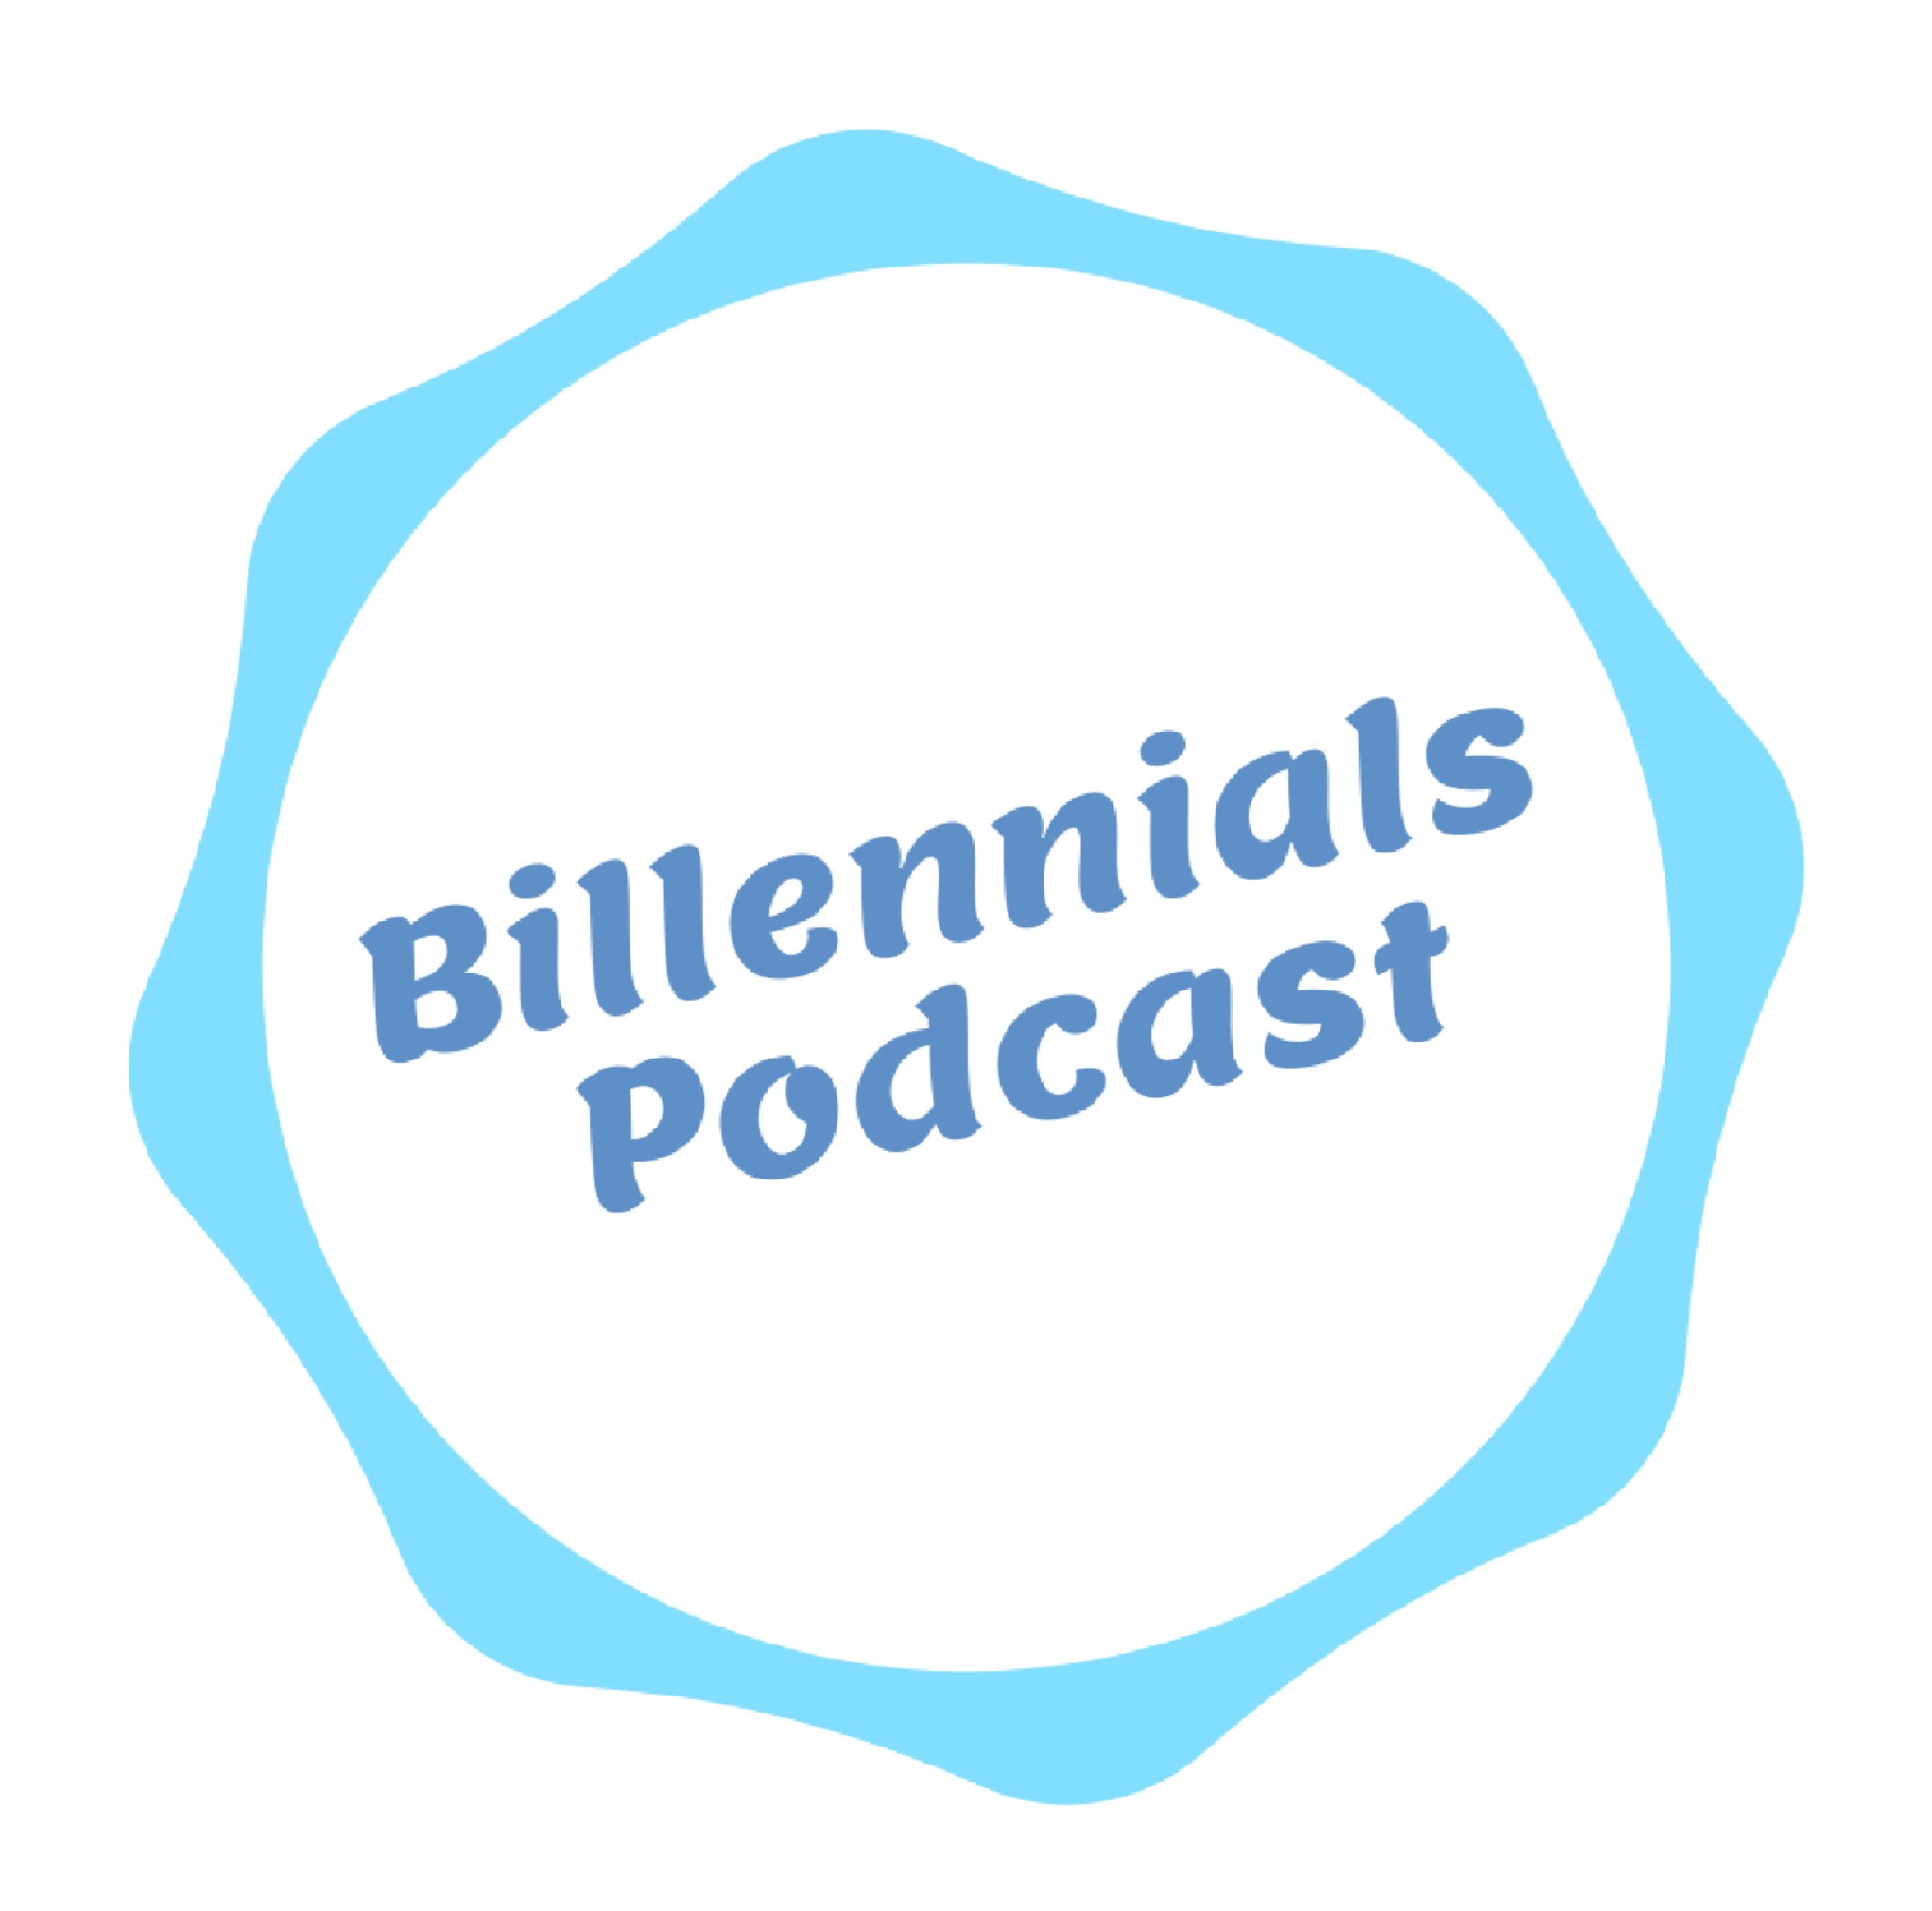 Billennials Podcast